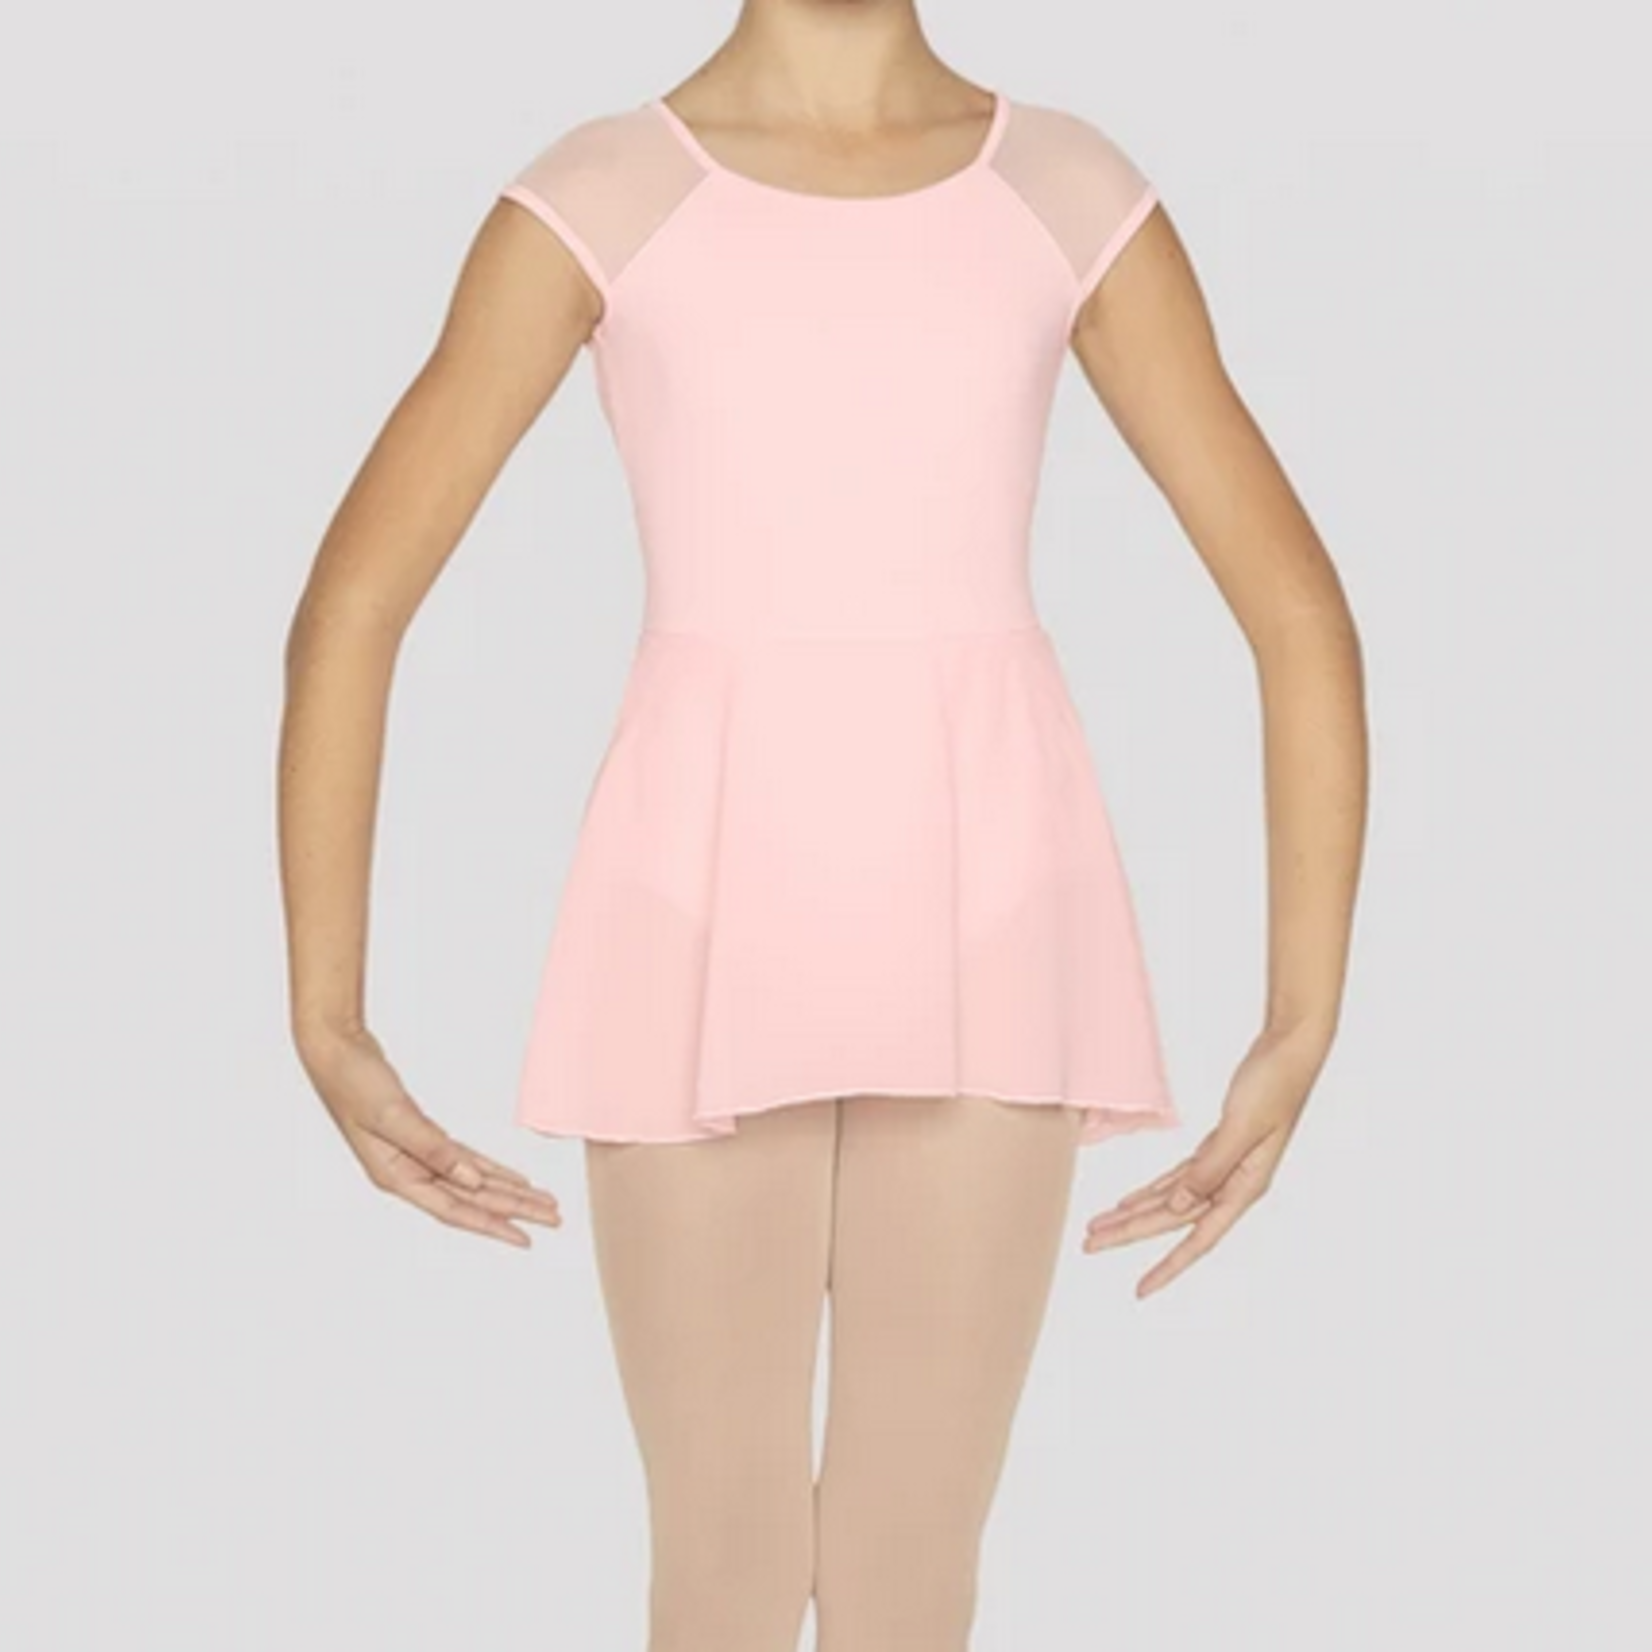 Bloch Bloch CL4882 Cap Sleeve Skirted Leotard